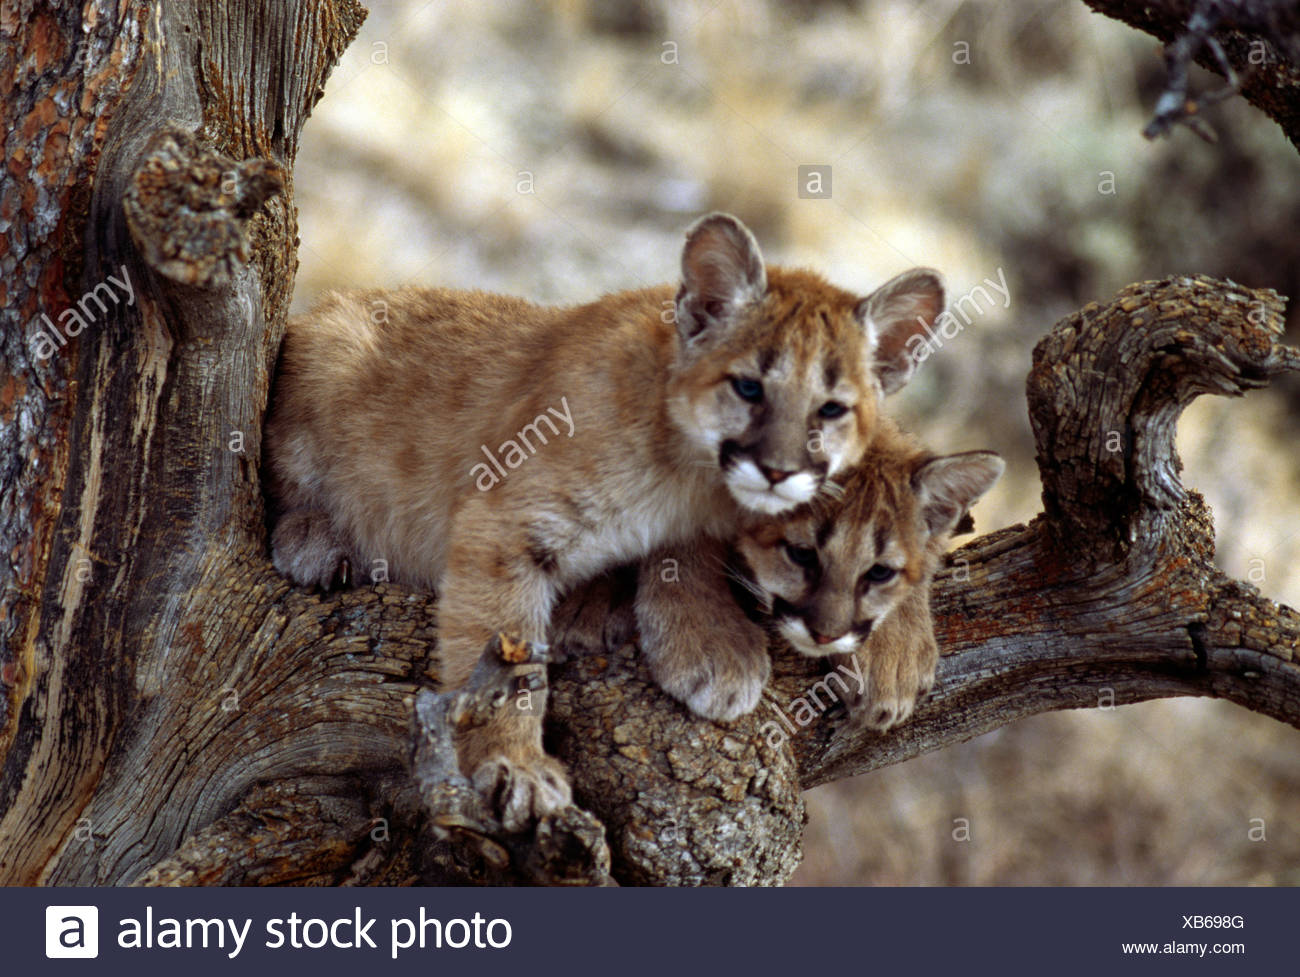 Two Cougar cubs (Puma concolor) resting in tree - Stock Image